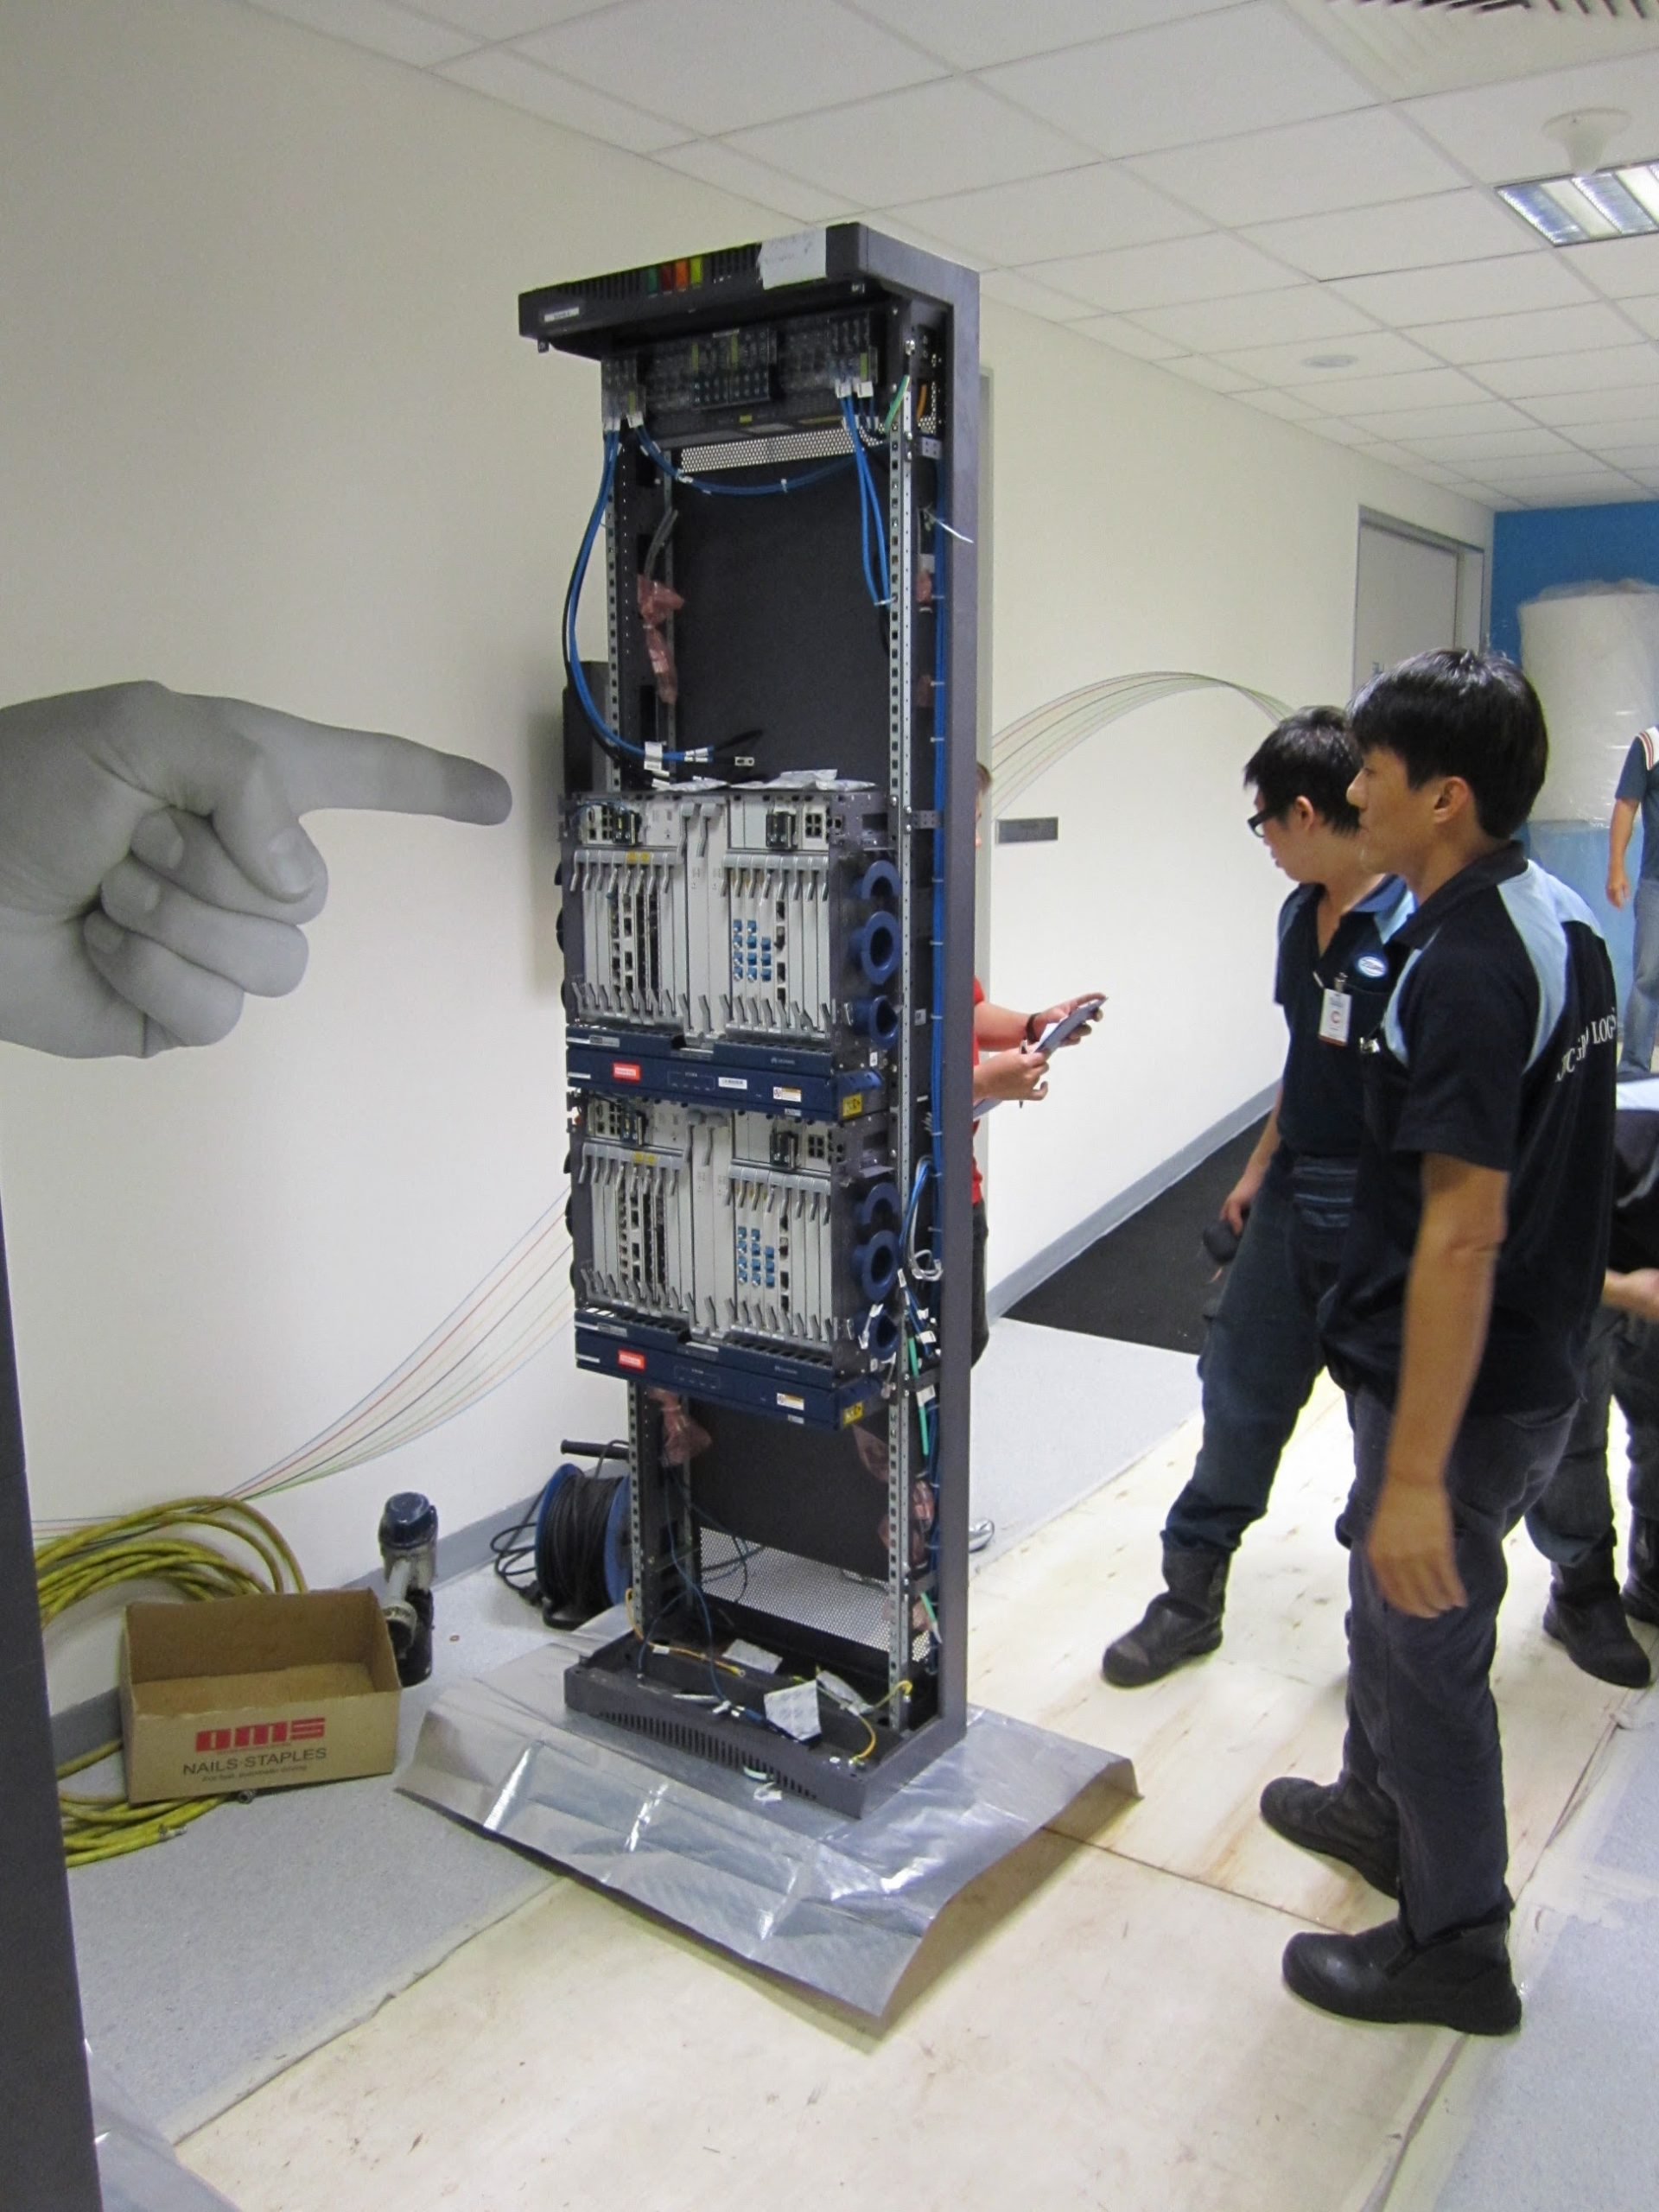 movers with electronic equipment